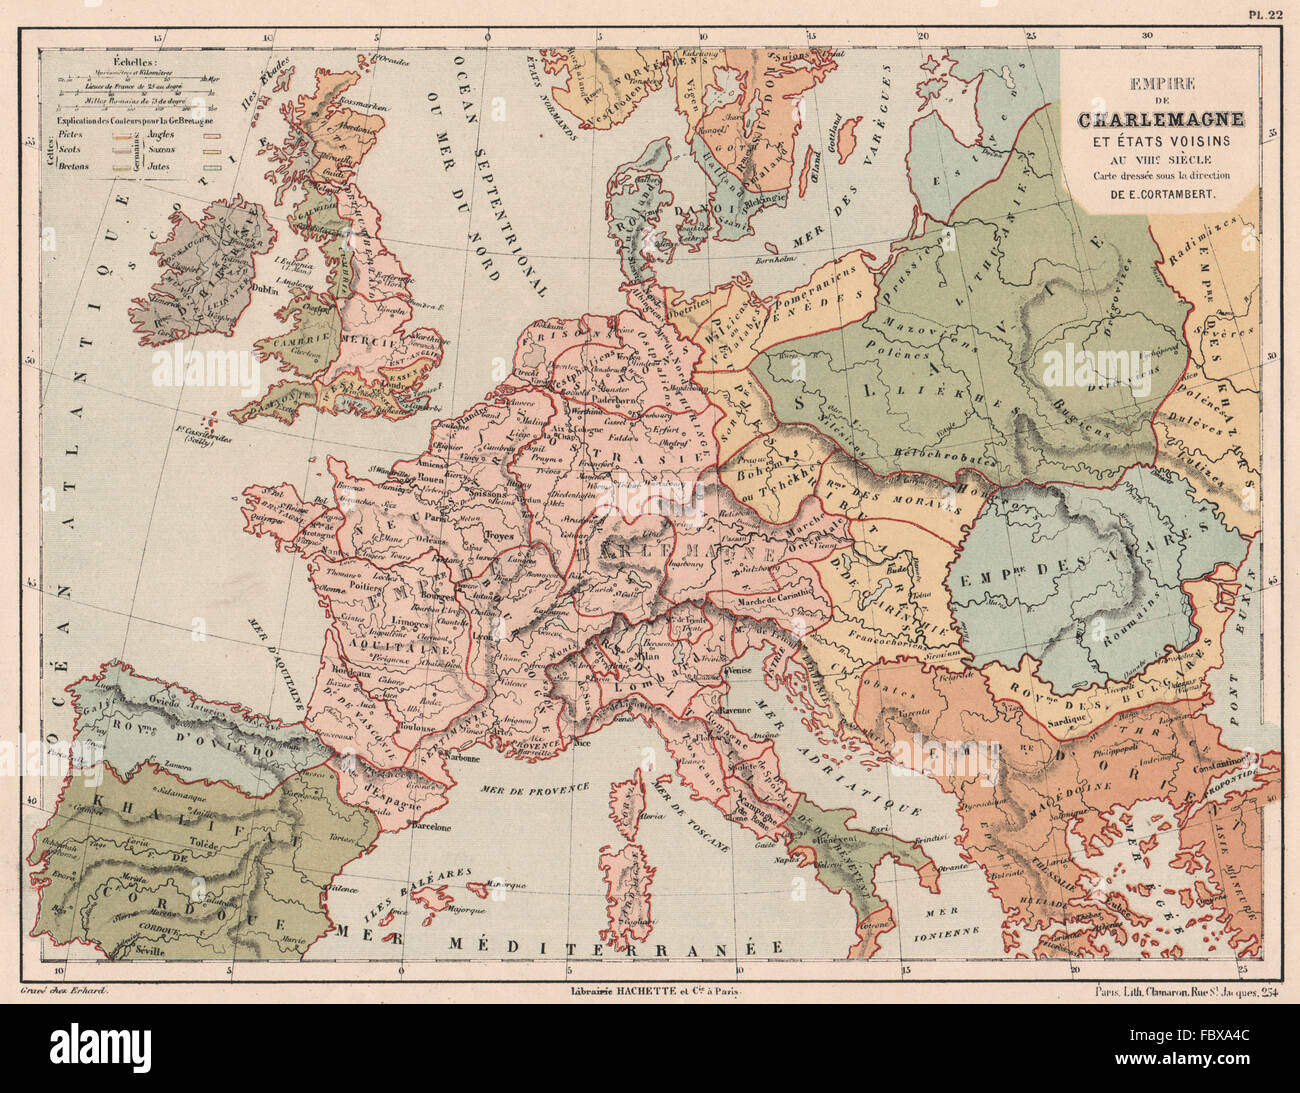 8th Century Europe Carolingian Empire Empire Of Charlemagne 1880